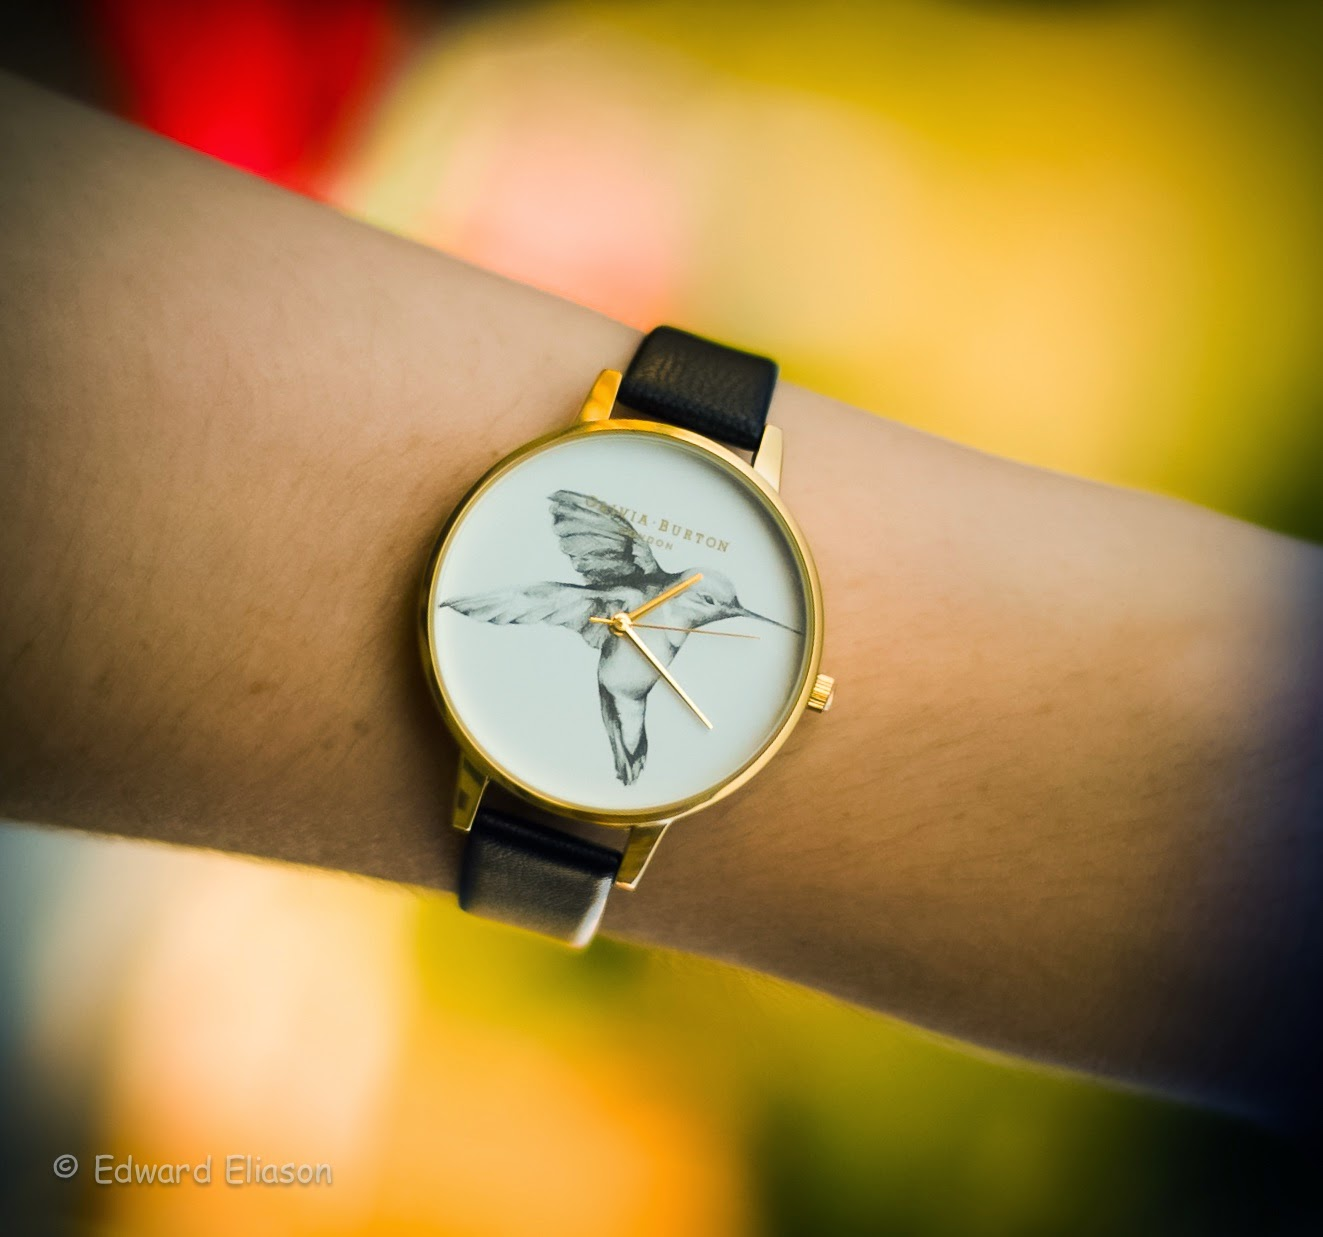 day to night series, day to night outfit, casual outfit, cute outfit, day outfit, olivia burton watches, fancy watches, hummingbird watches, hummingbird watch outfit,